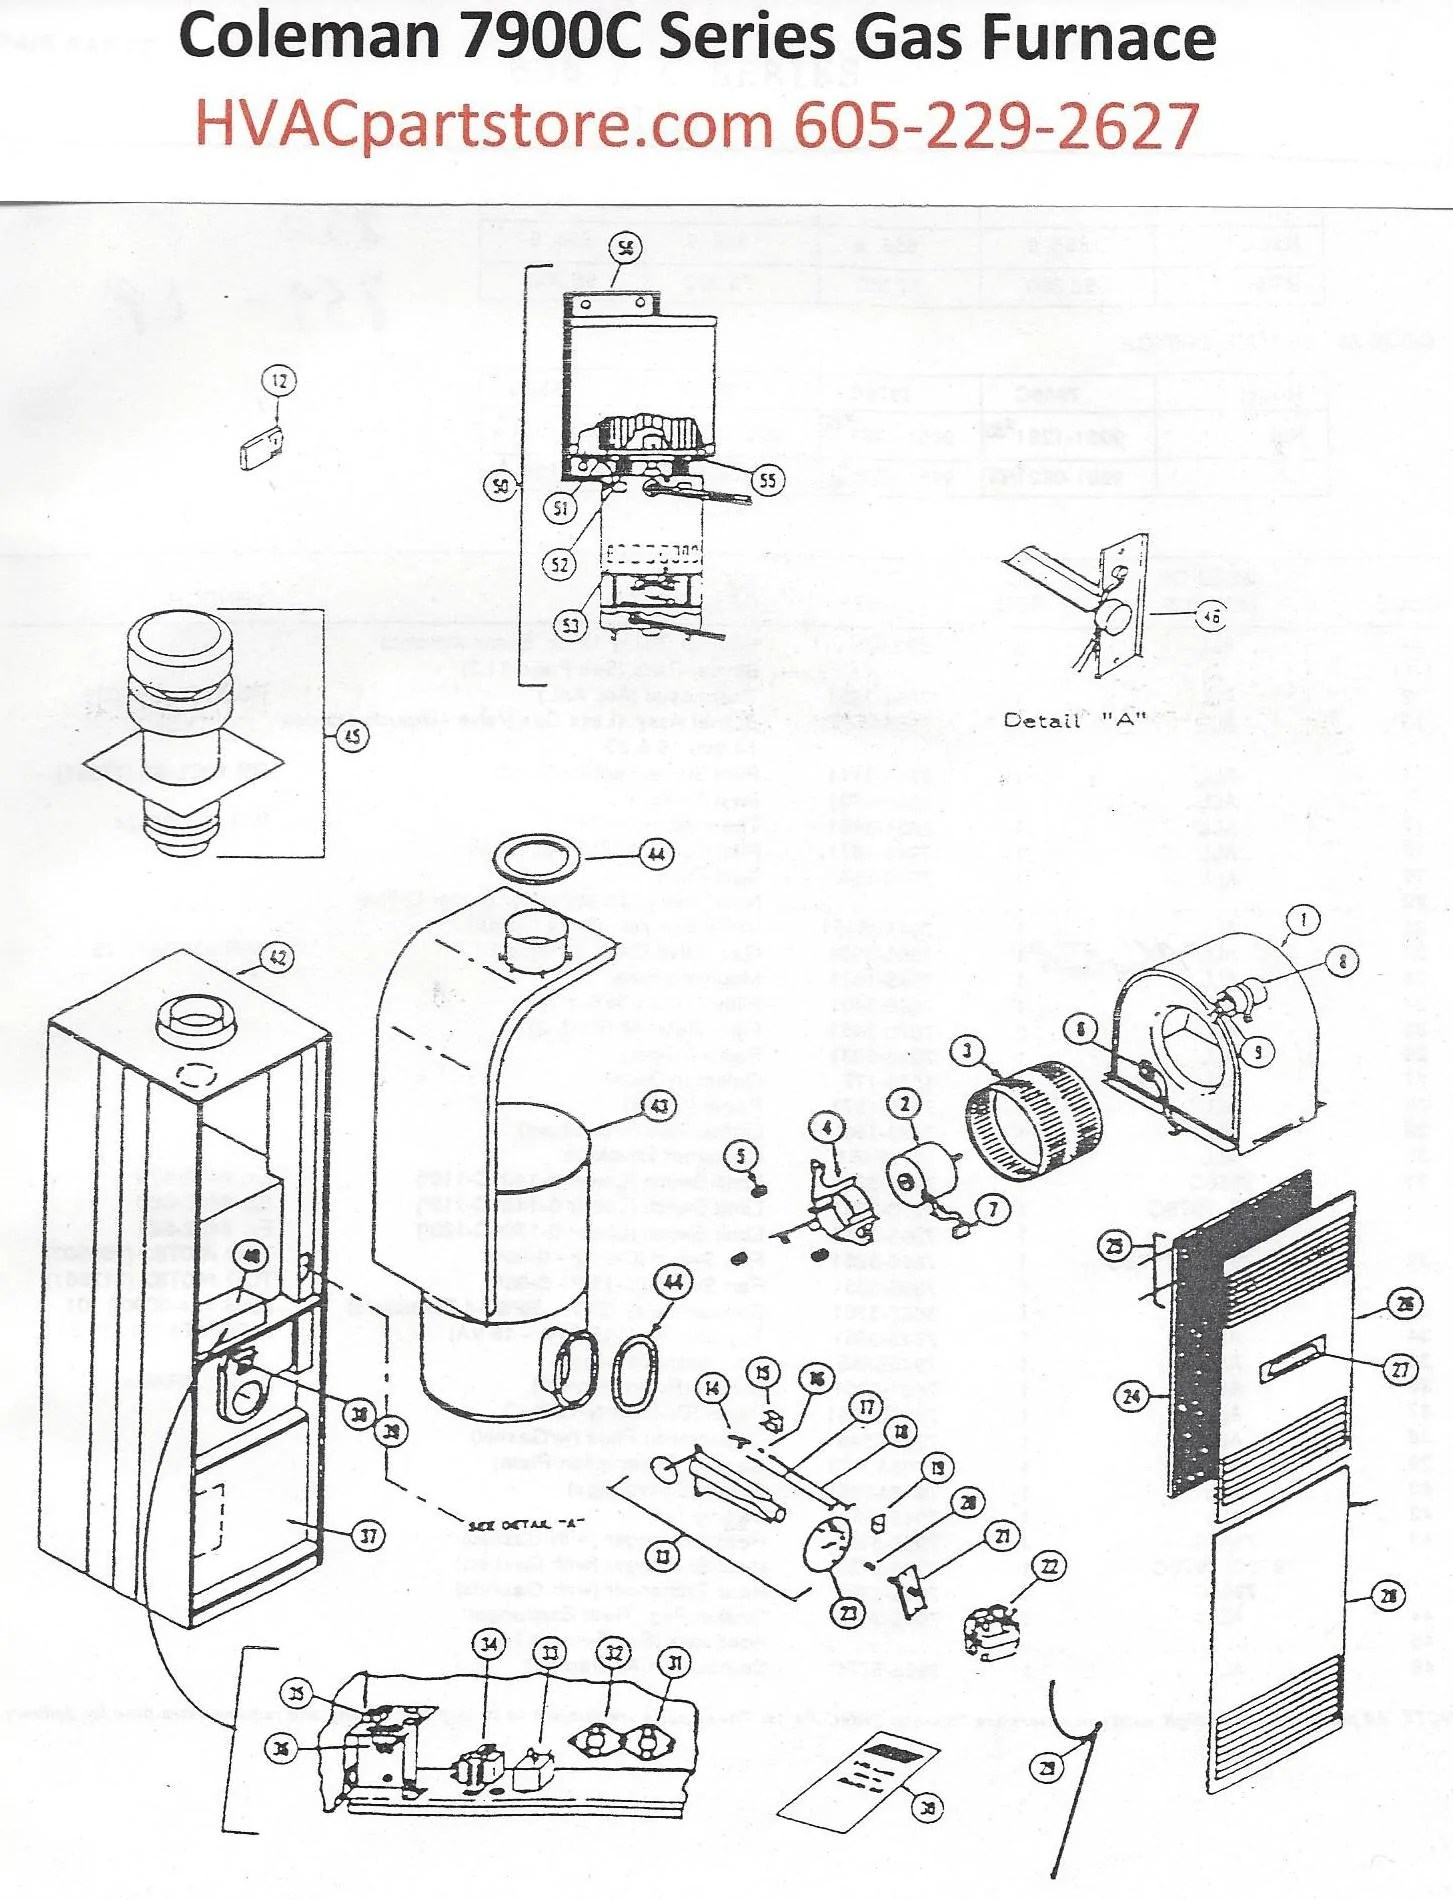 click here to view a manual for the coleman 7970c856 which includes wiring diagrams  [ 1453 x 1900 Pixel ]